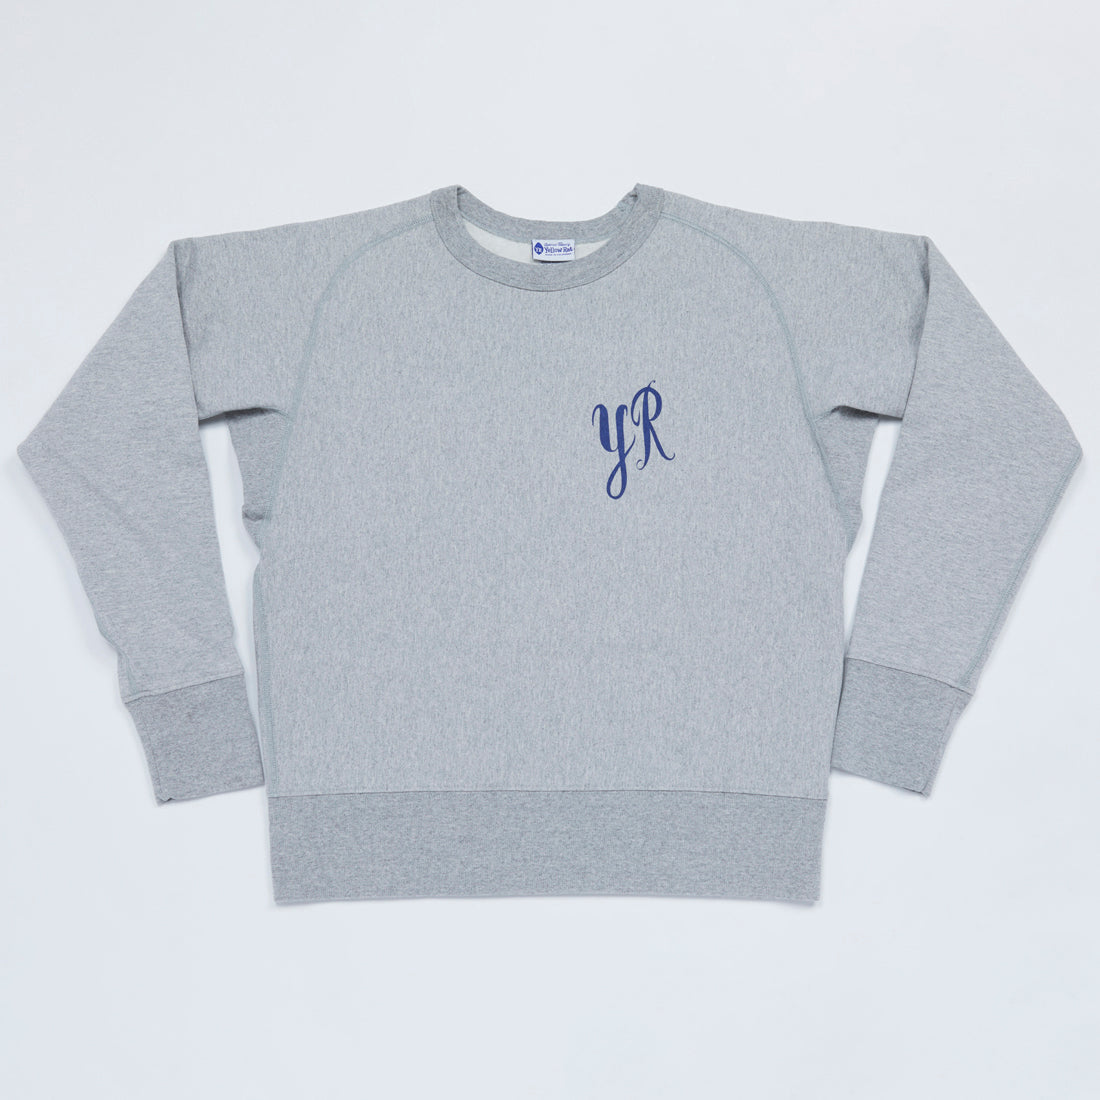 YR by Barry McGee Sweatshirt (Heather Gray)